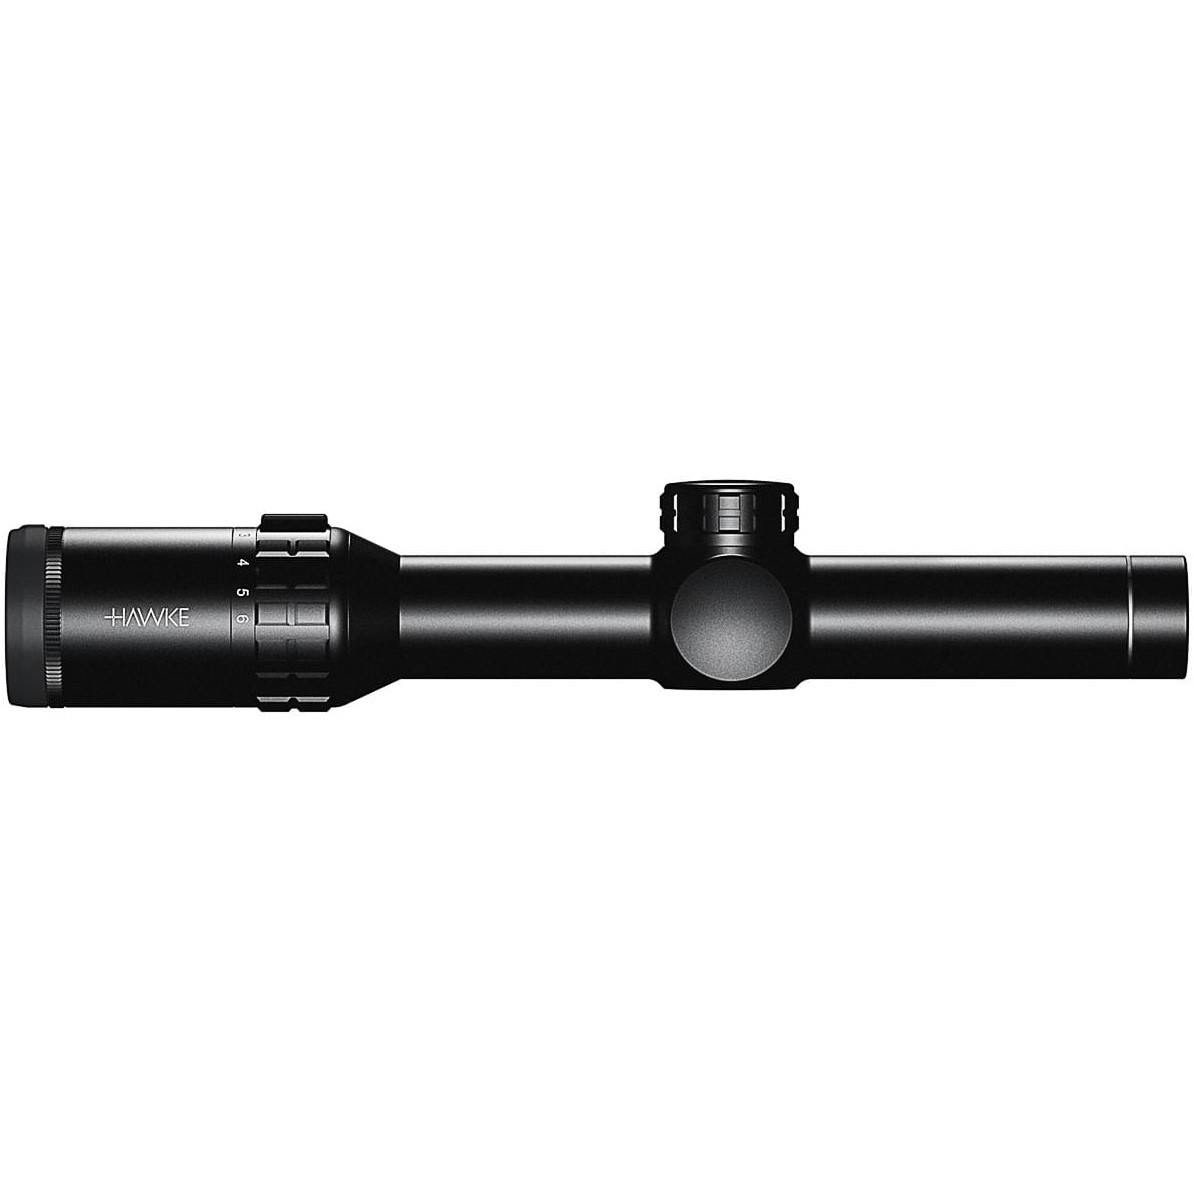 Hawke 1-6x24 Frontier 30mm Riflescope